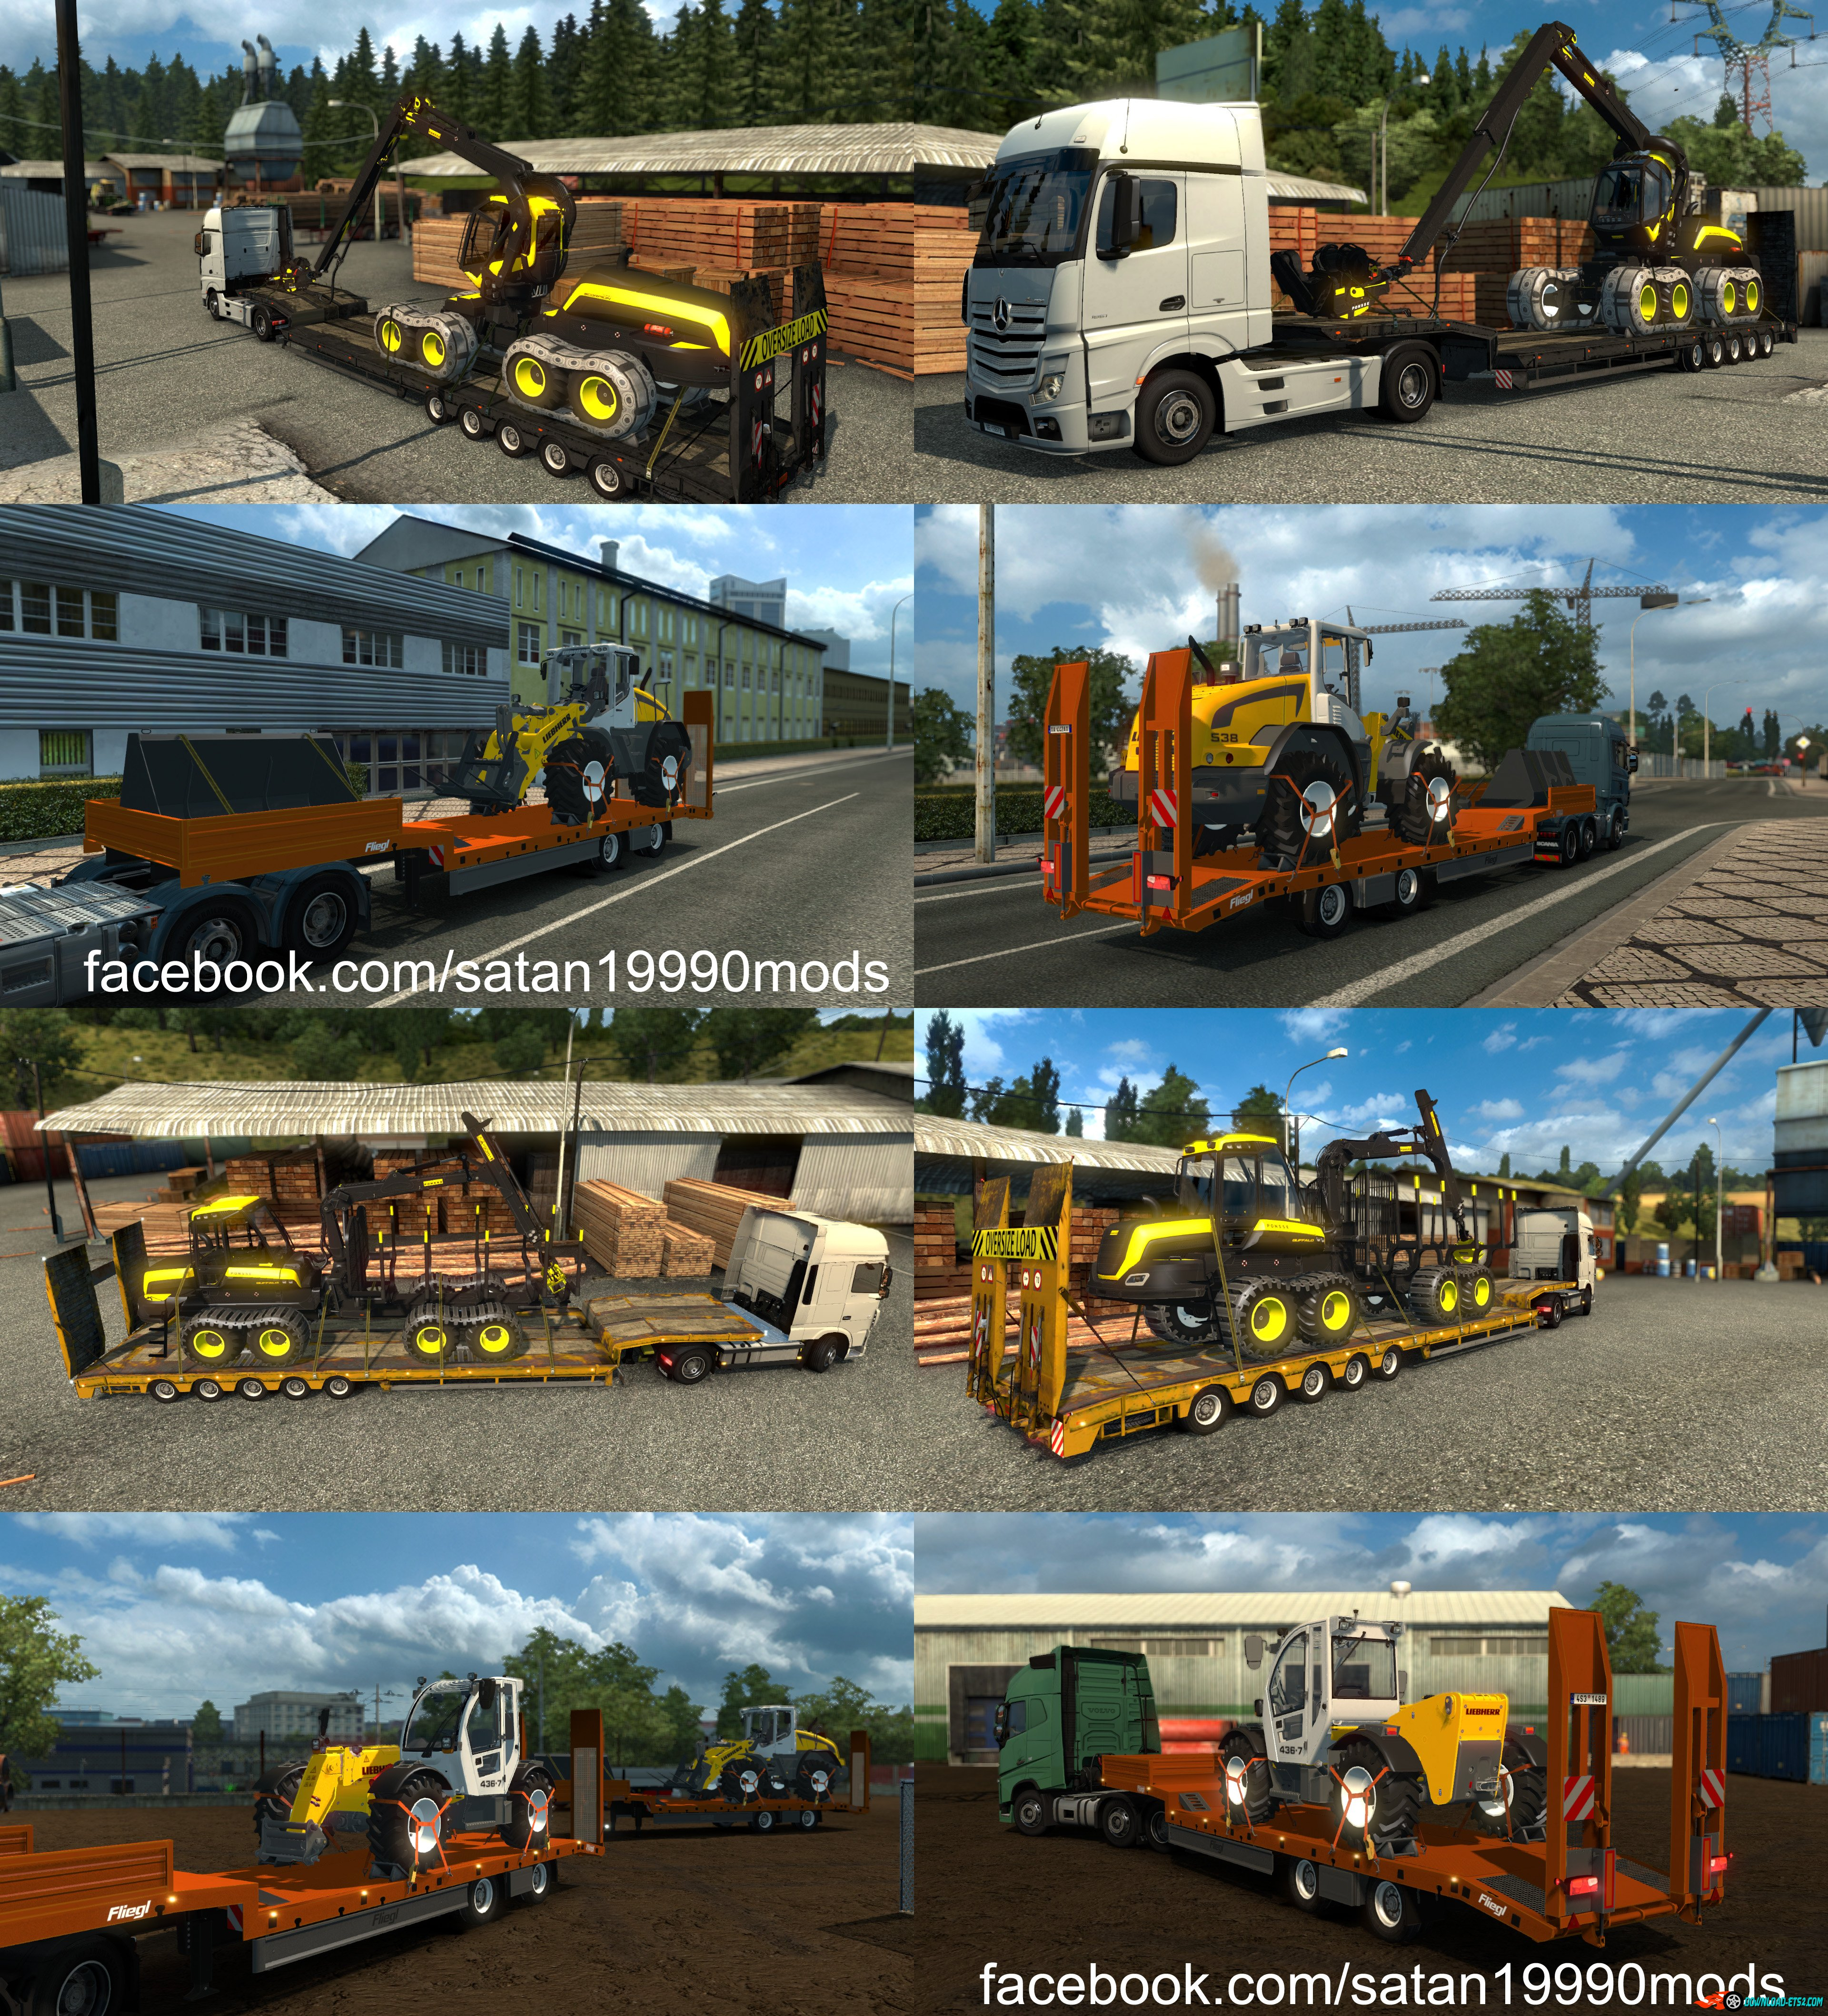 Trailer Mod Pack v3.9 by satan19990